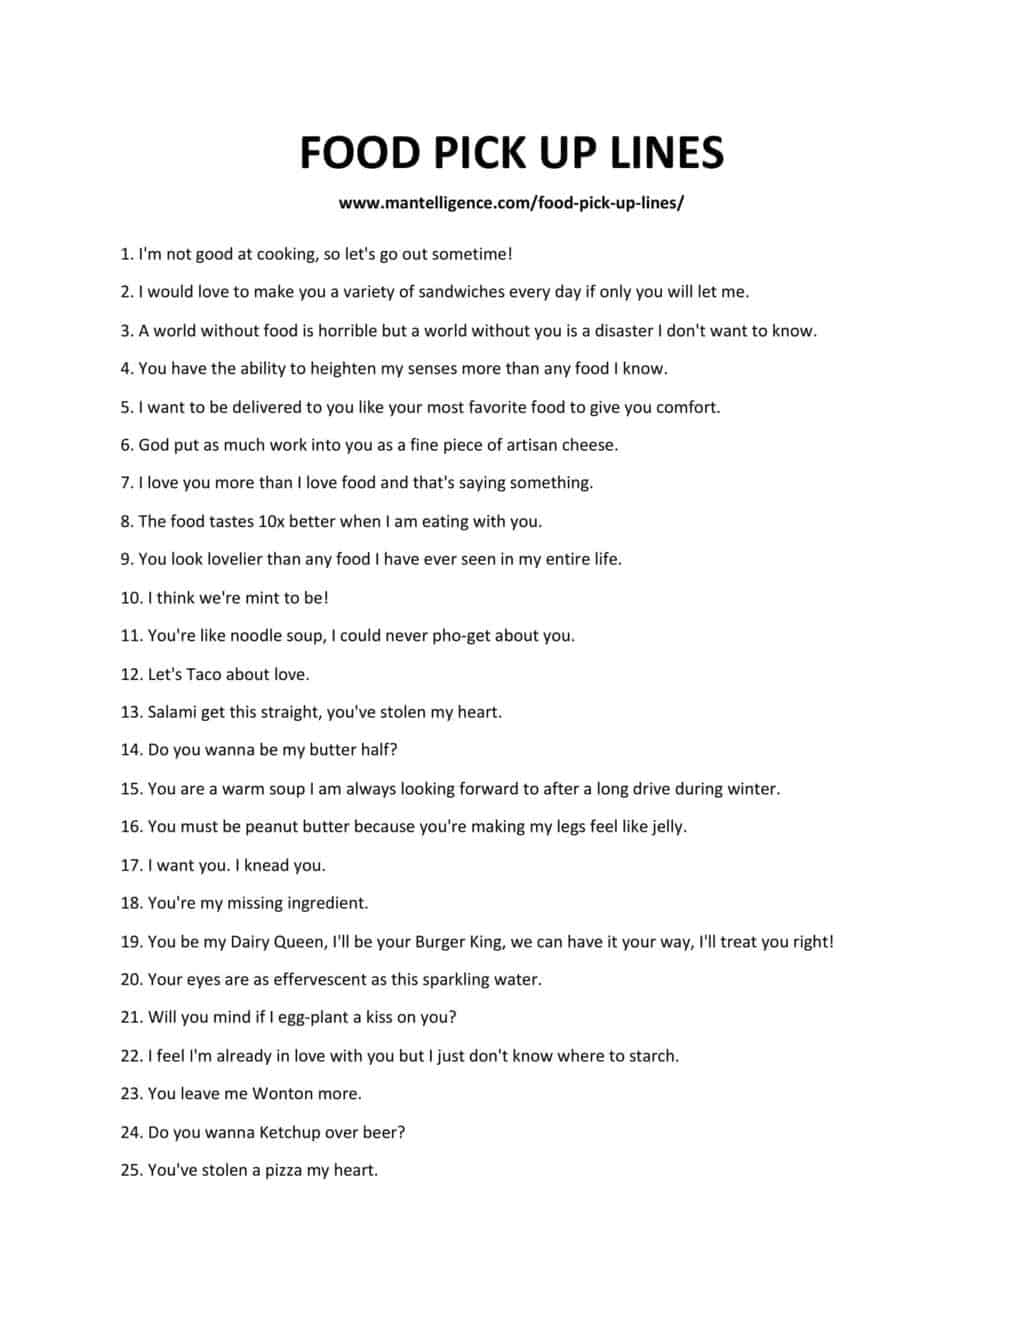 Downloadable lines